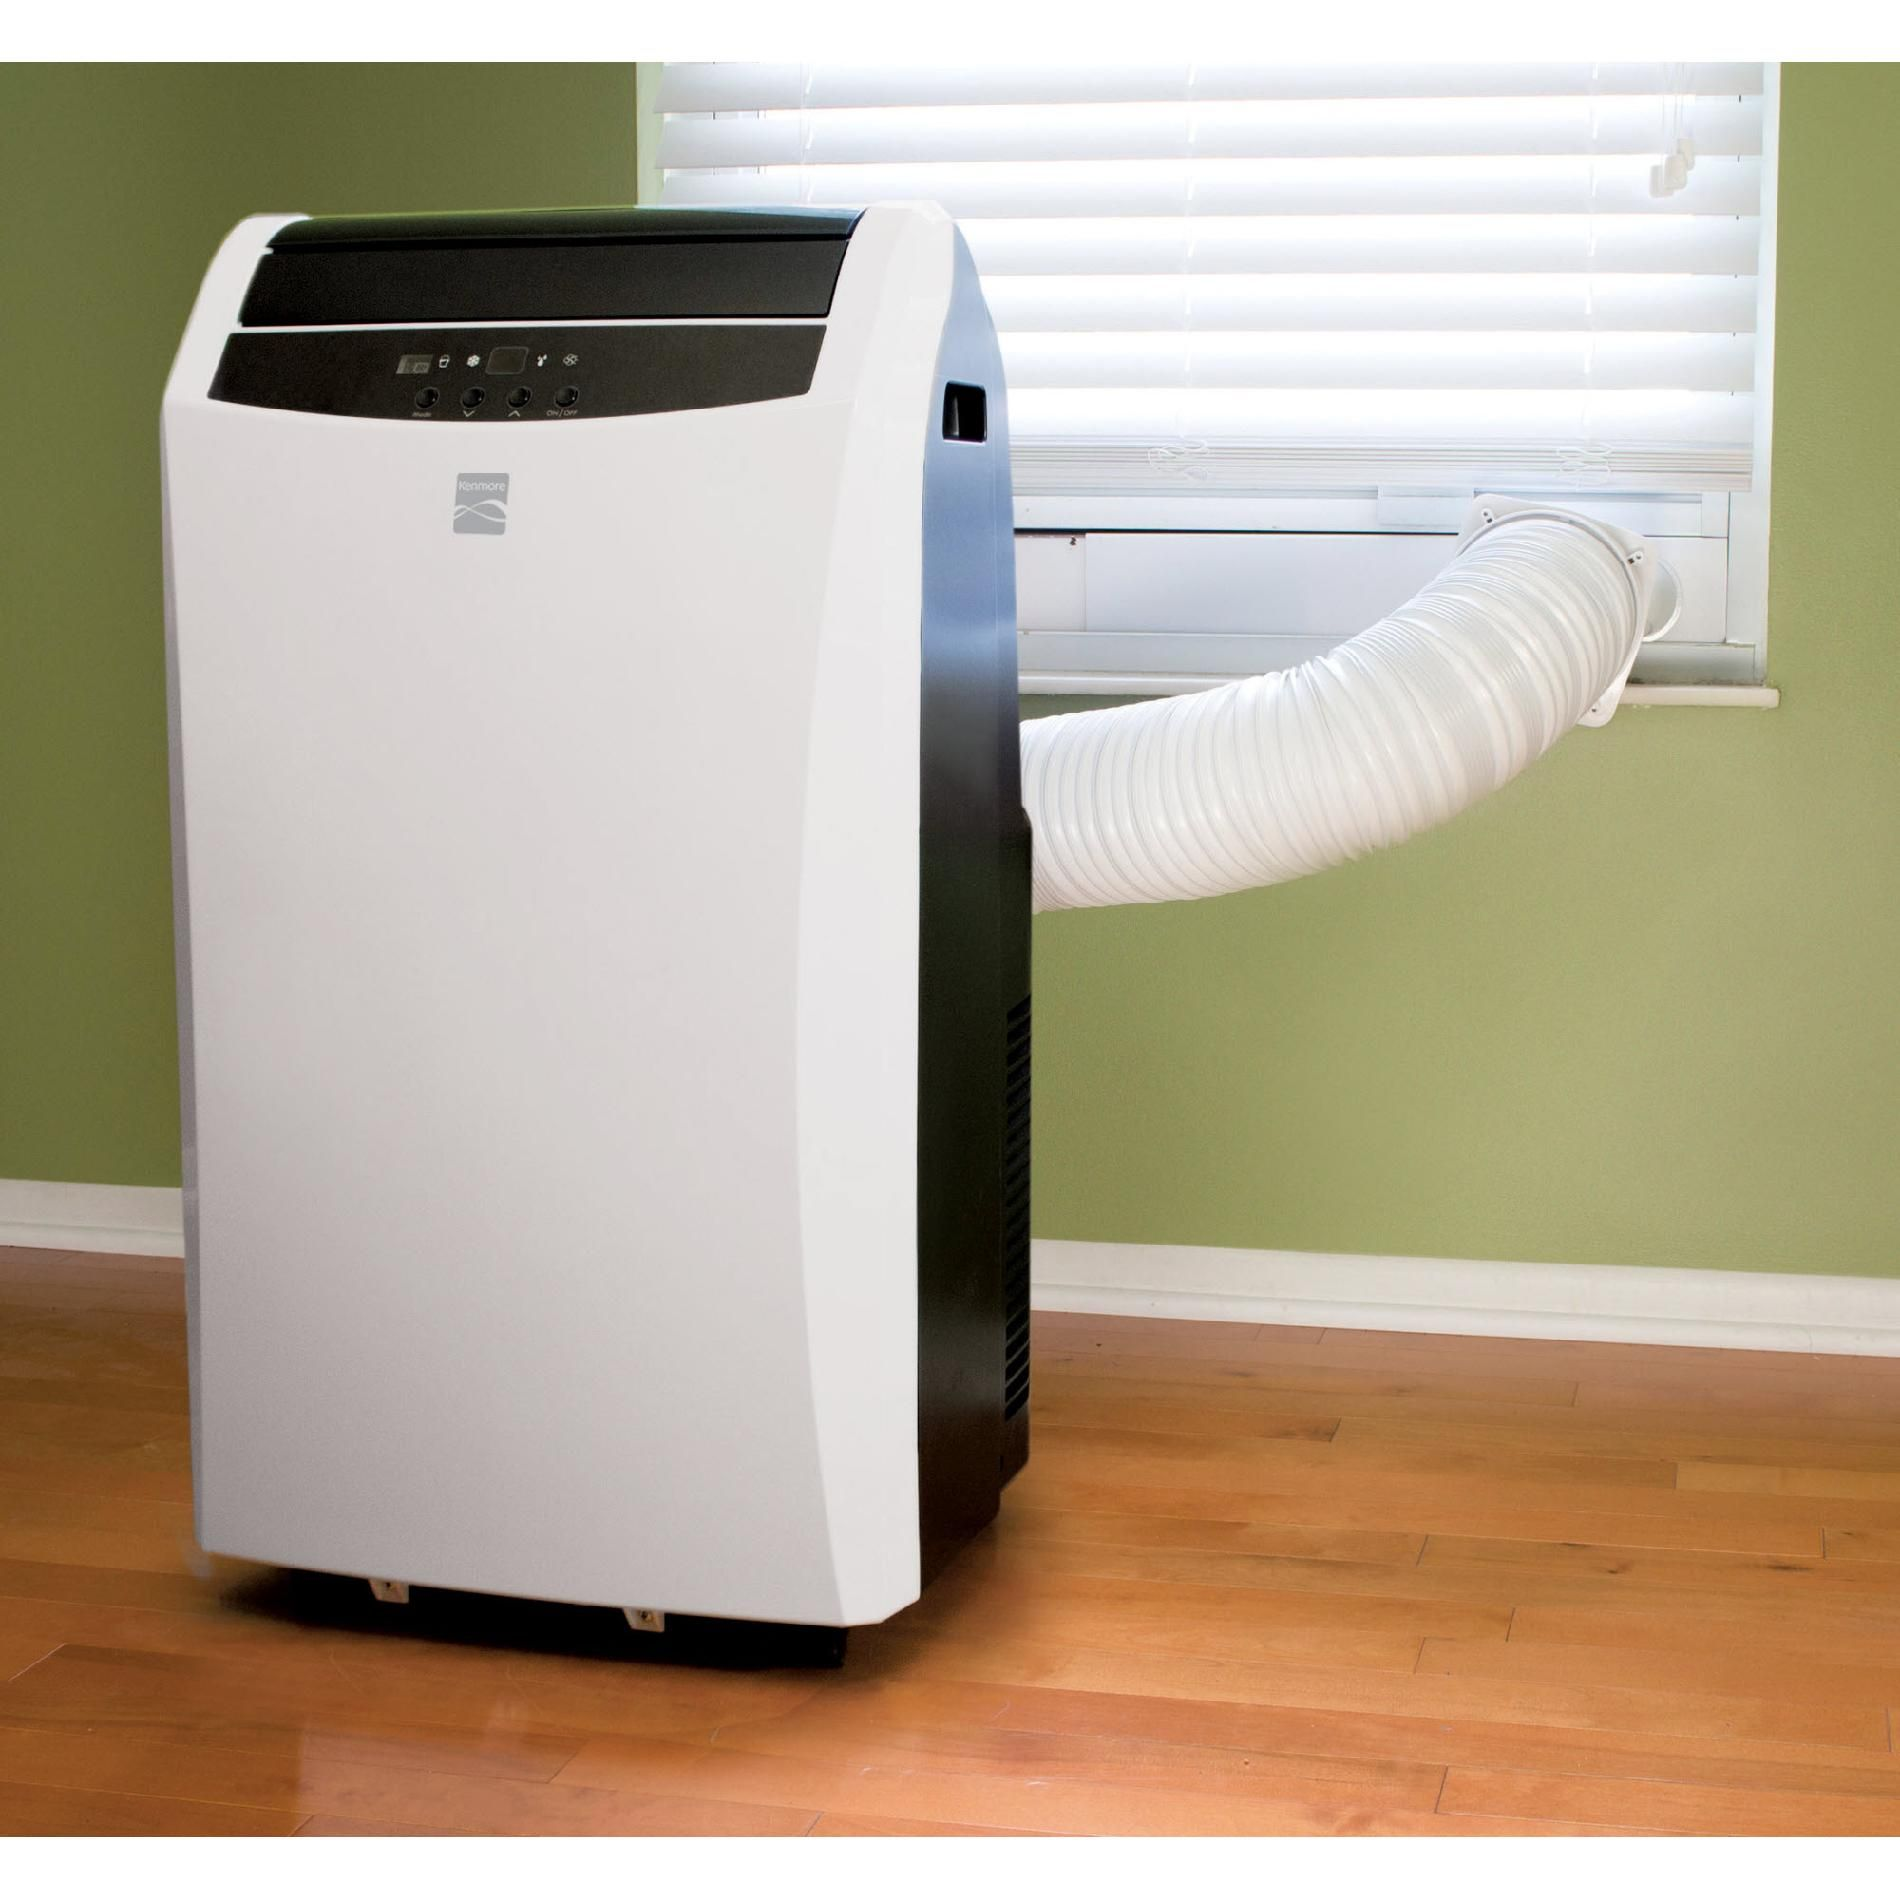 Air conditioner for a house portable air conditioner